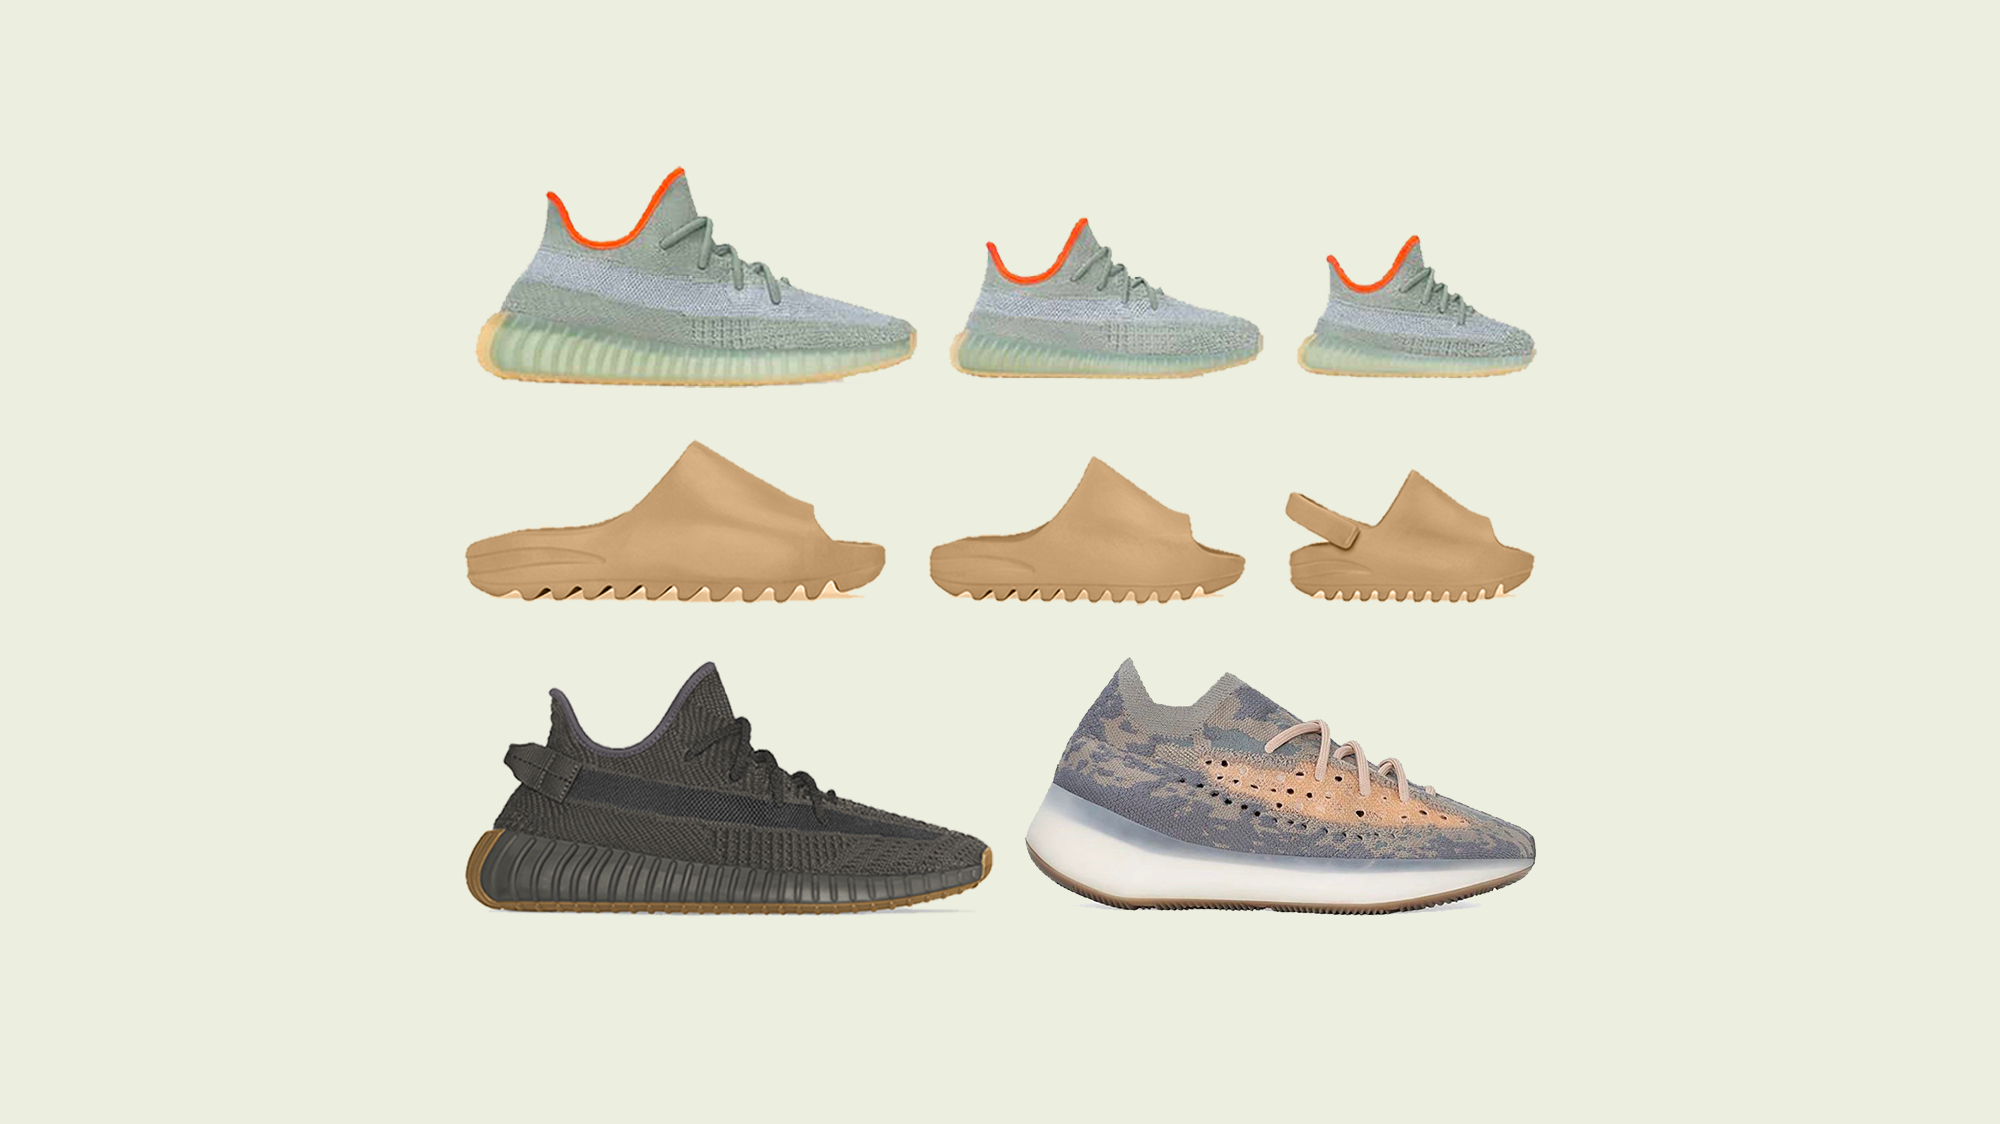 YEEZY March 2020 Line Up & Release Dates